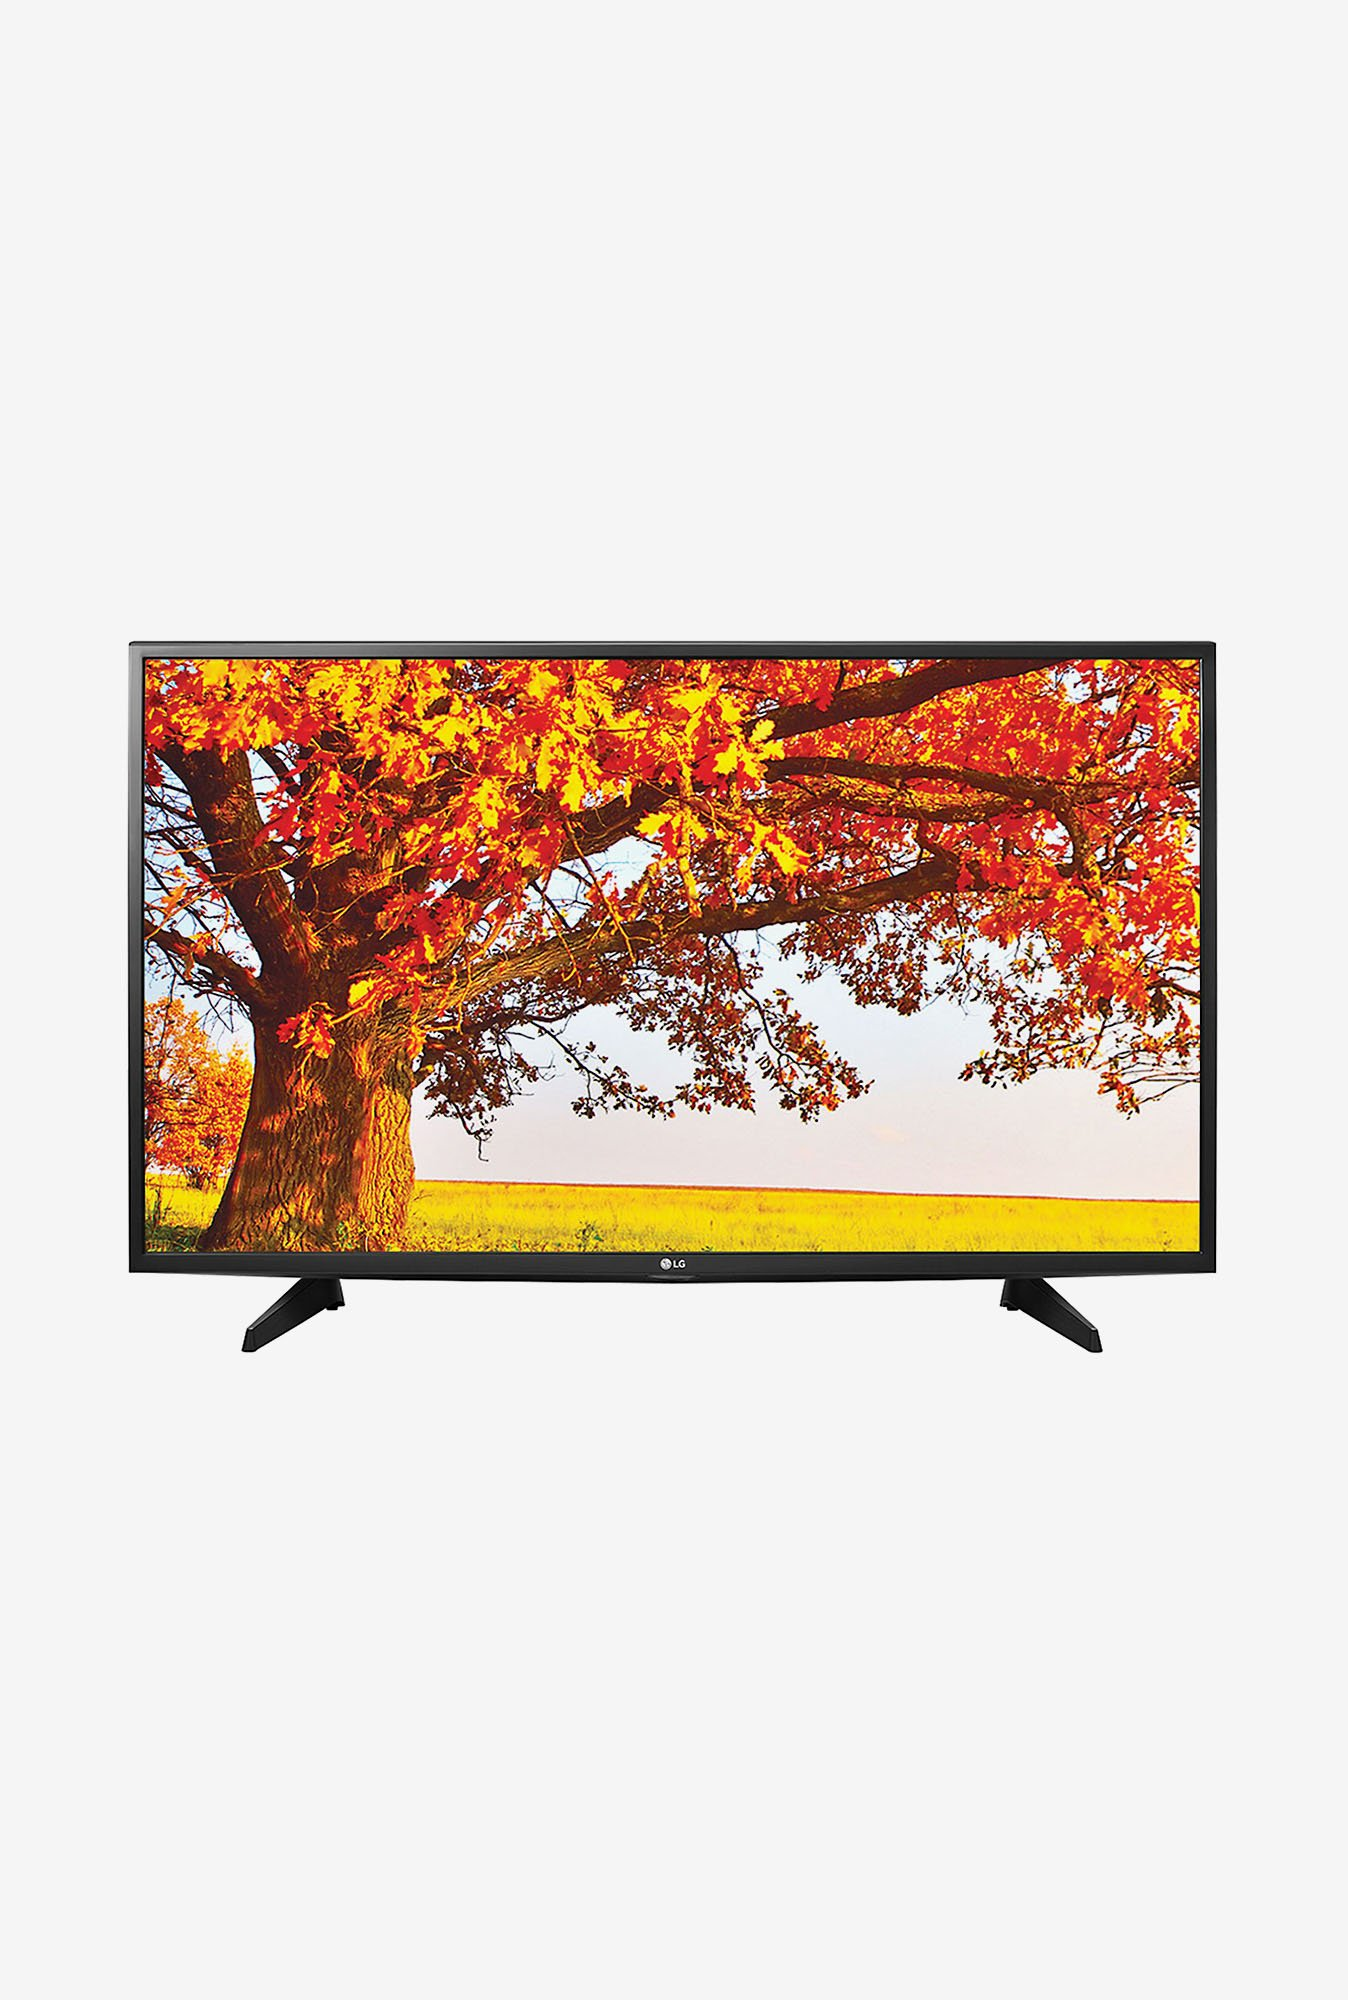 LG 43LH520T 108cm (43 inches) Full HD Led TV (Black)